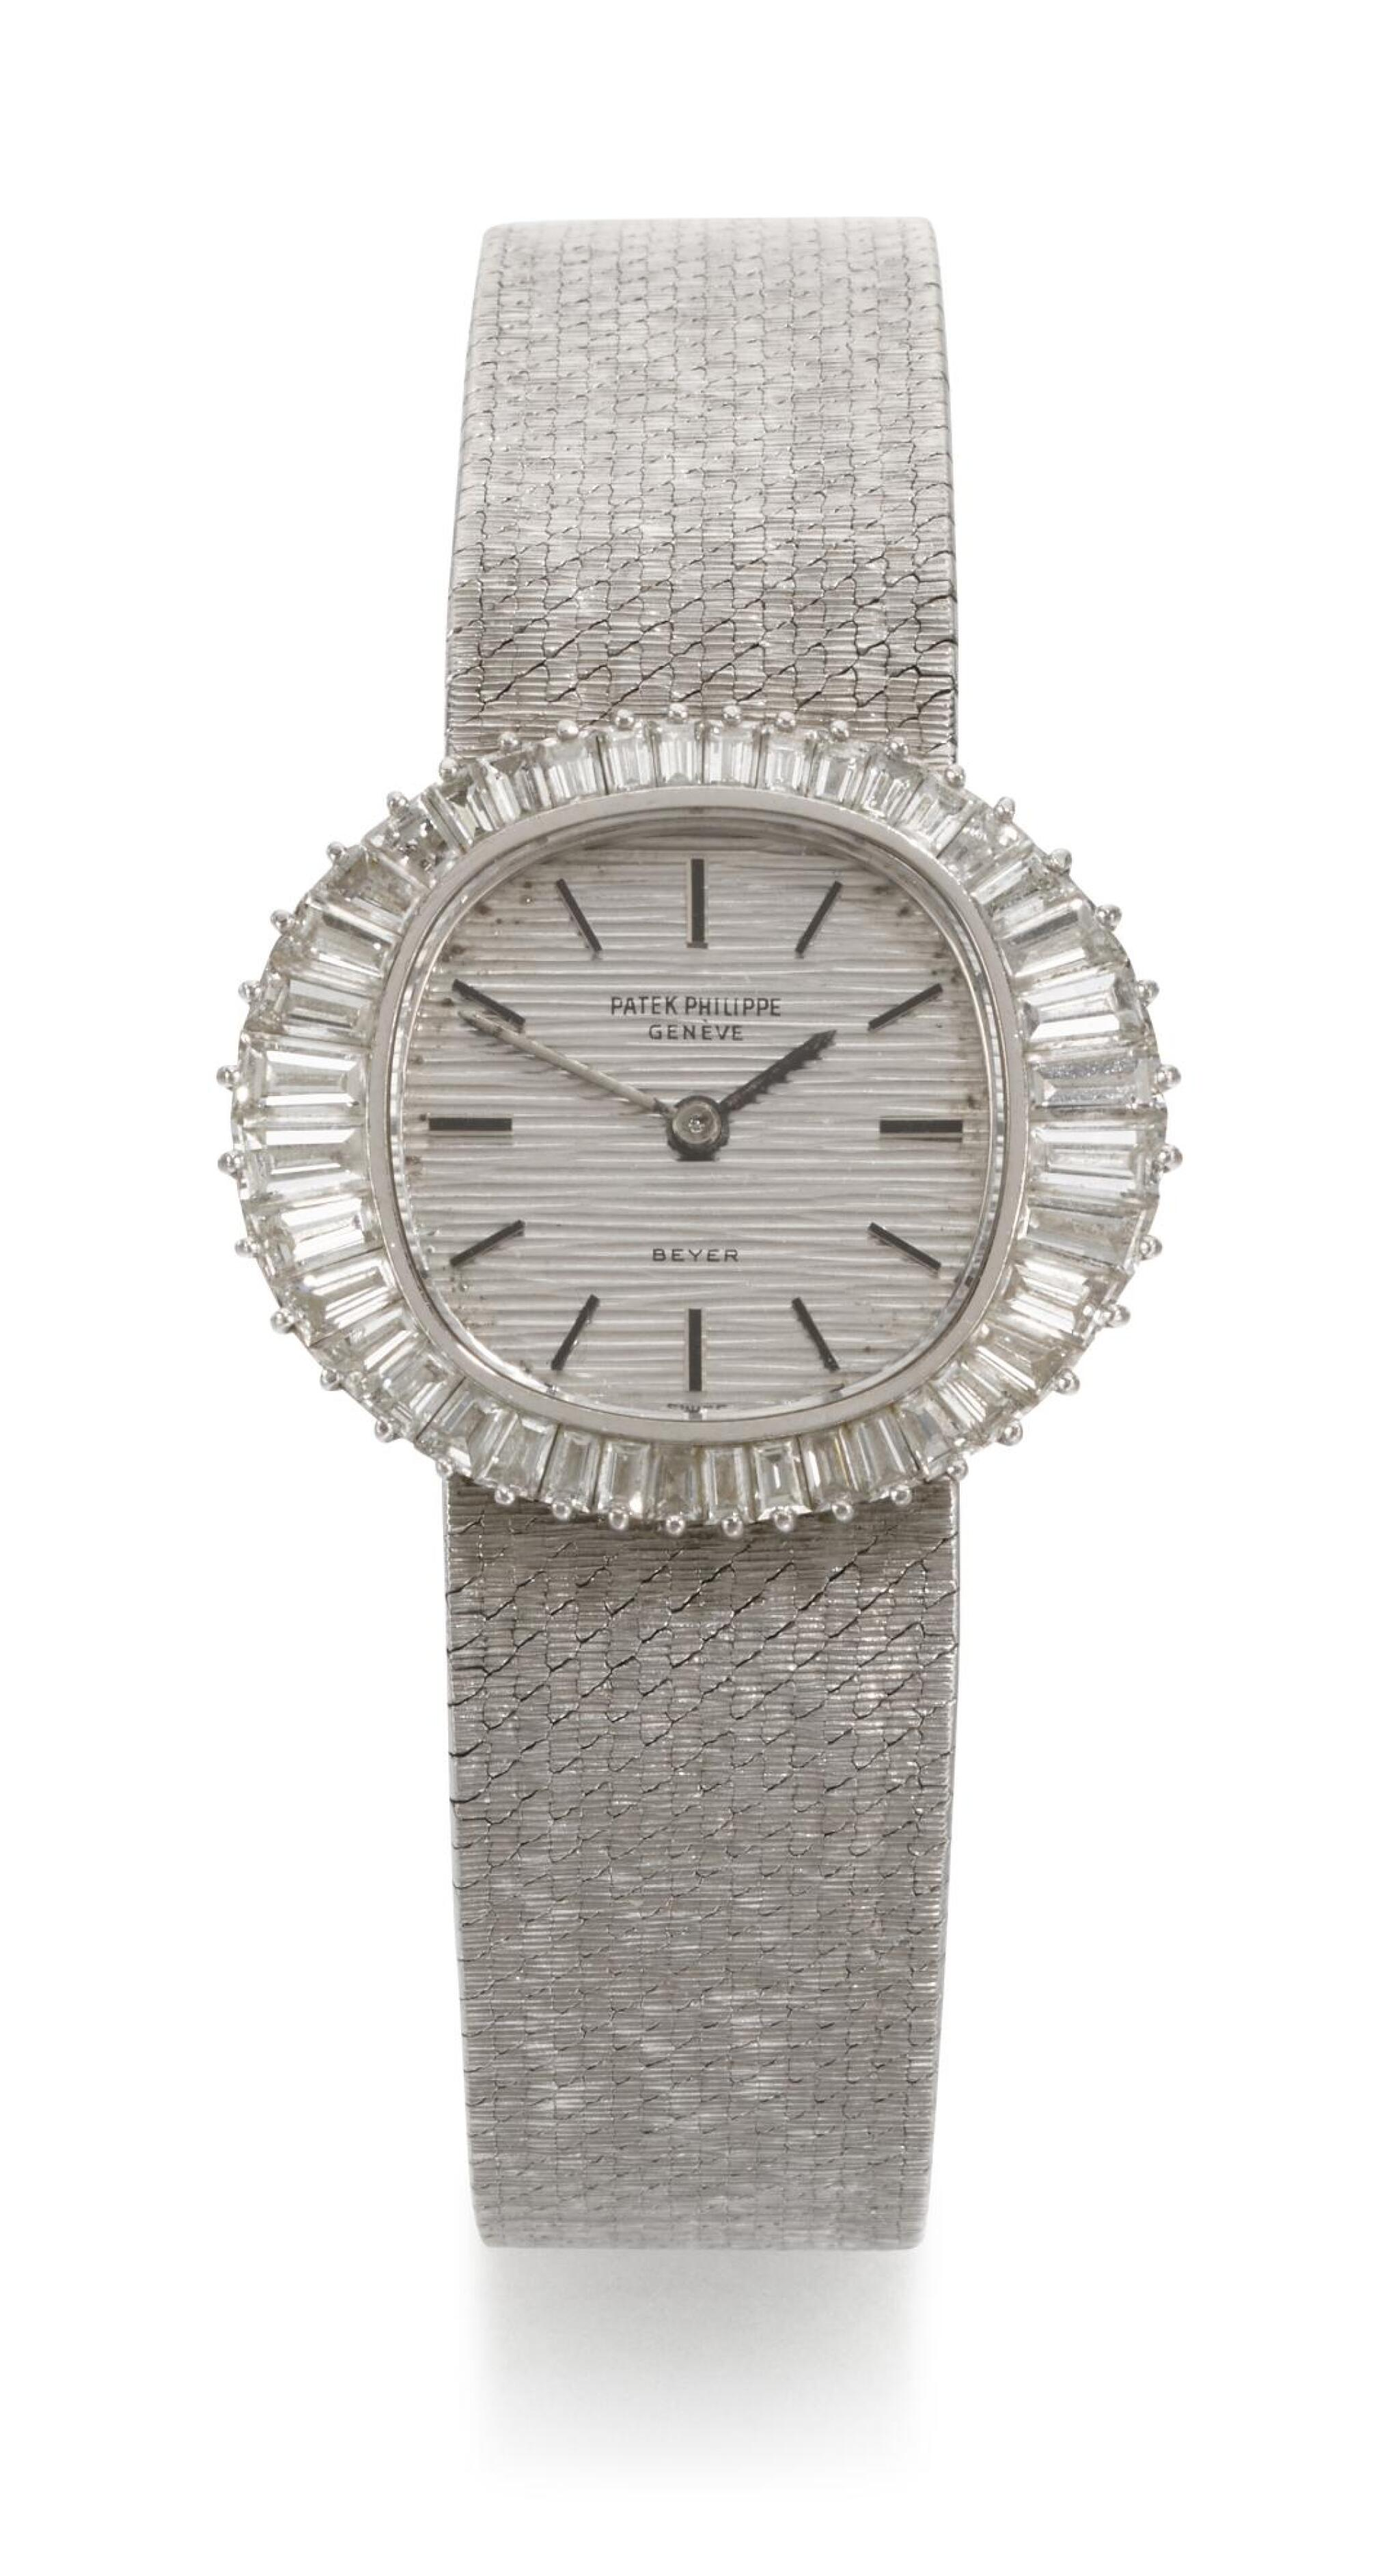 View full screen - View 1 of Lot 19. PATEK PHILIPPE   RETAILED BY BEYER, REFERENCE 3393/1  WHITE GOLD DIAMOND-SET BRACELET WATCH, MADE IN 1970.